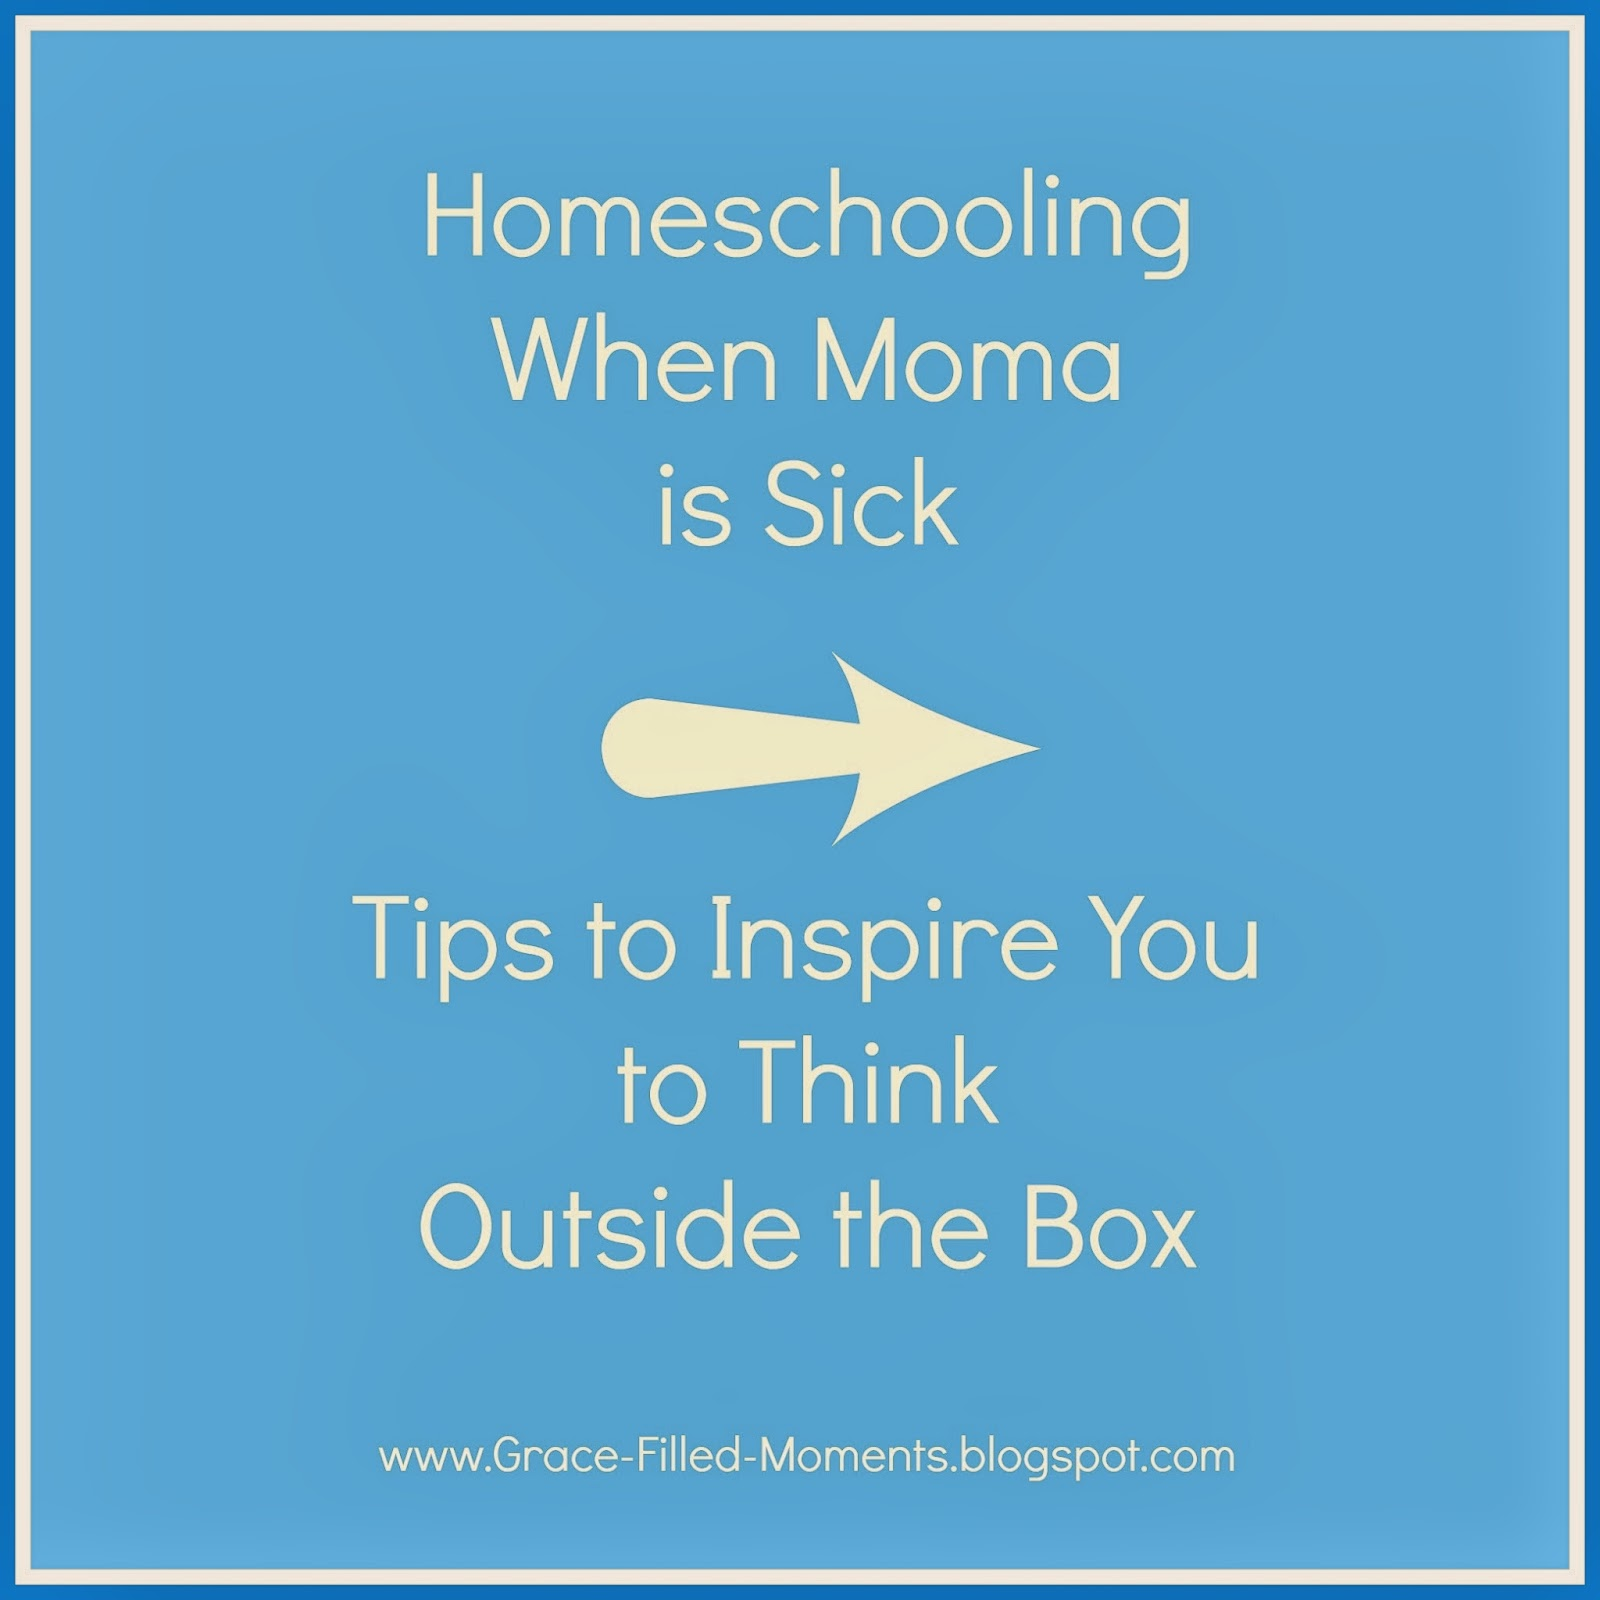 Homeschooling when sick guest post on www.ParadisePraises.com